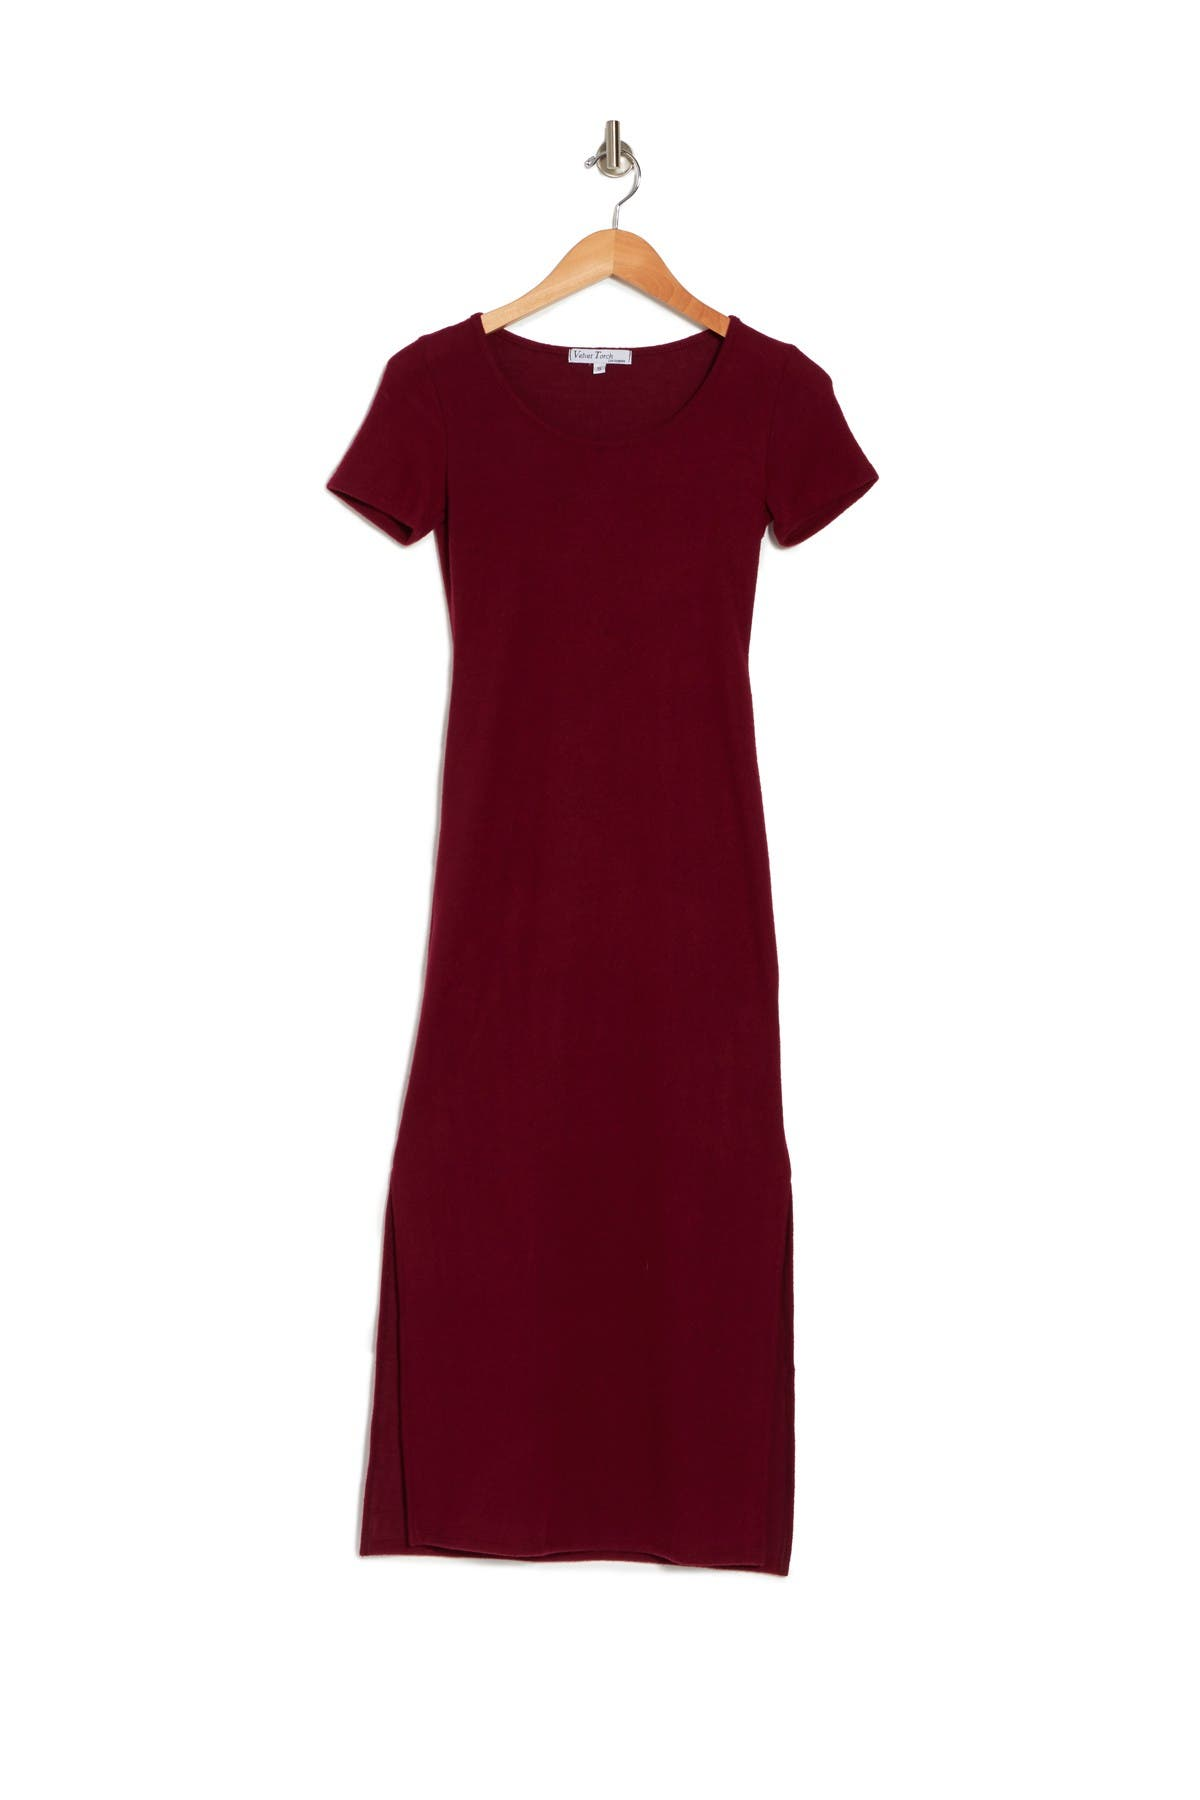 Image of Velvet Torch Cap Sleeve Midi Dress